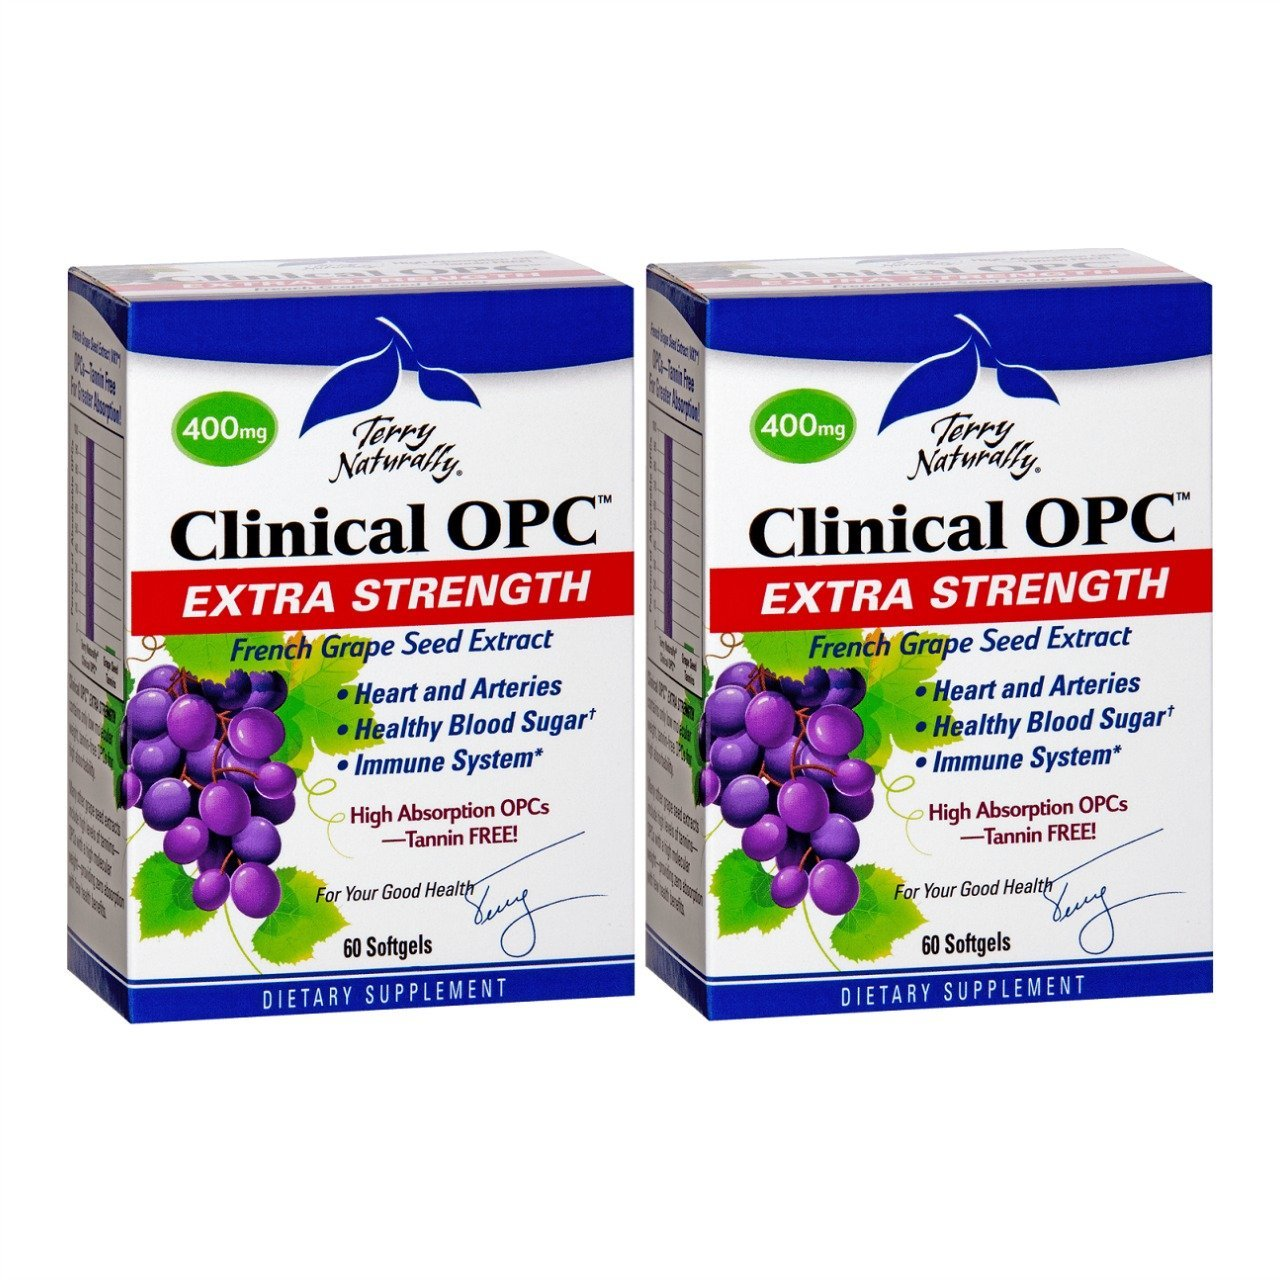 Terry Naturally/Europharma Clinical OPC Extra Strength -60 Softgels -2 Pack